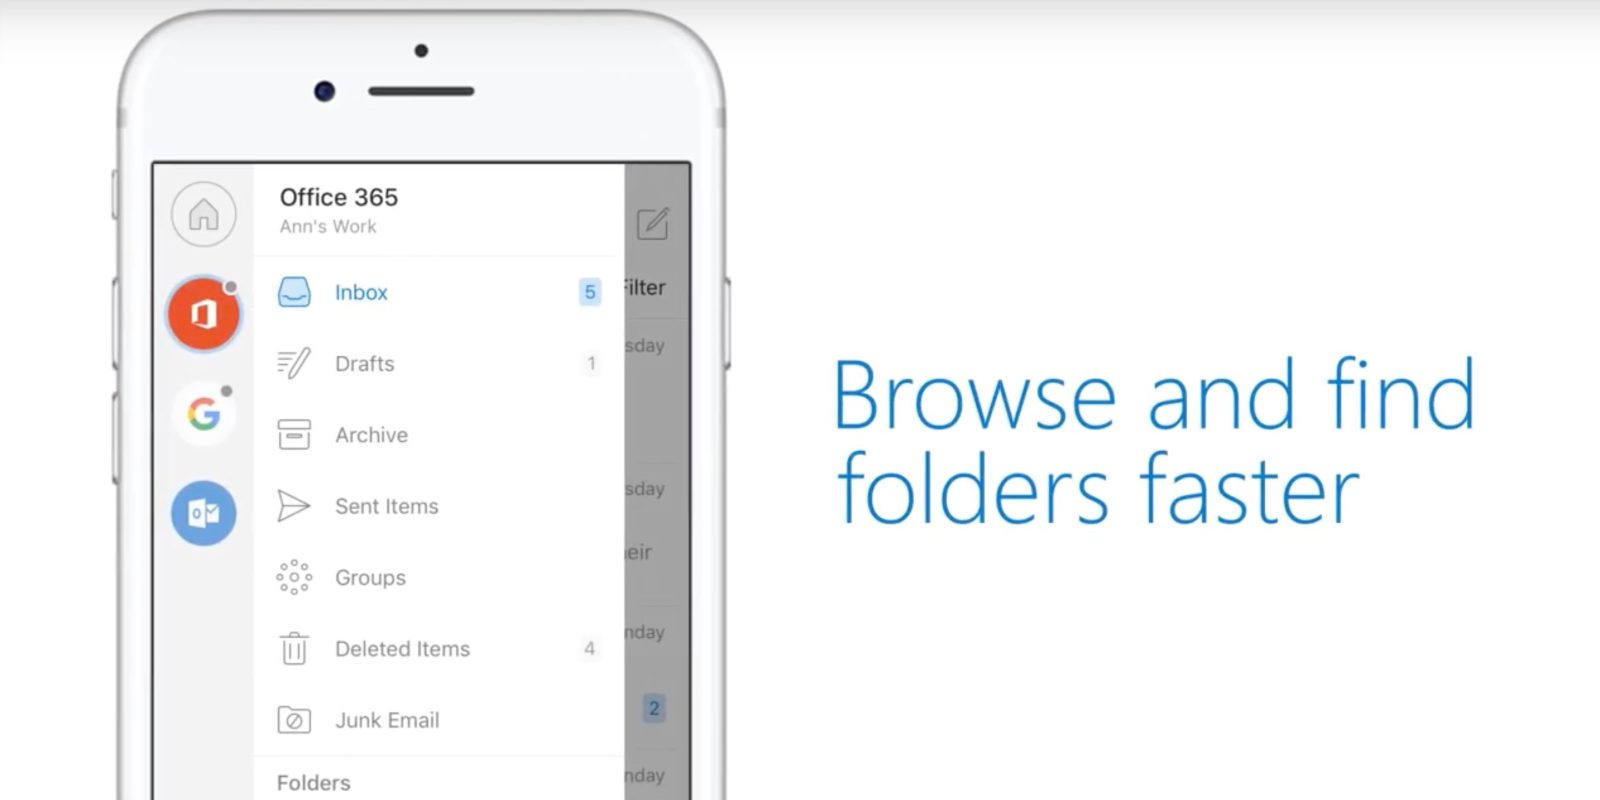 Outlook for iOS updated with redesigned navigation, conversations